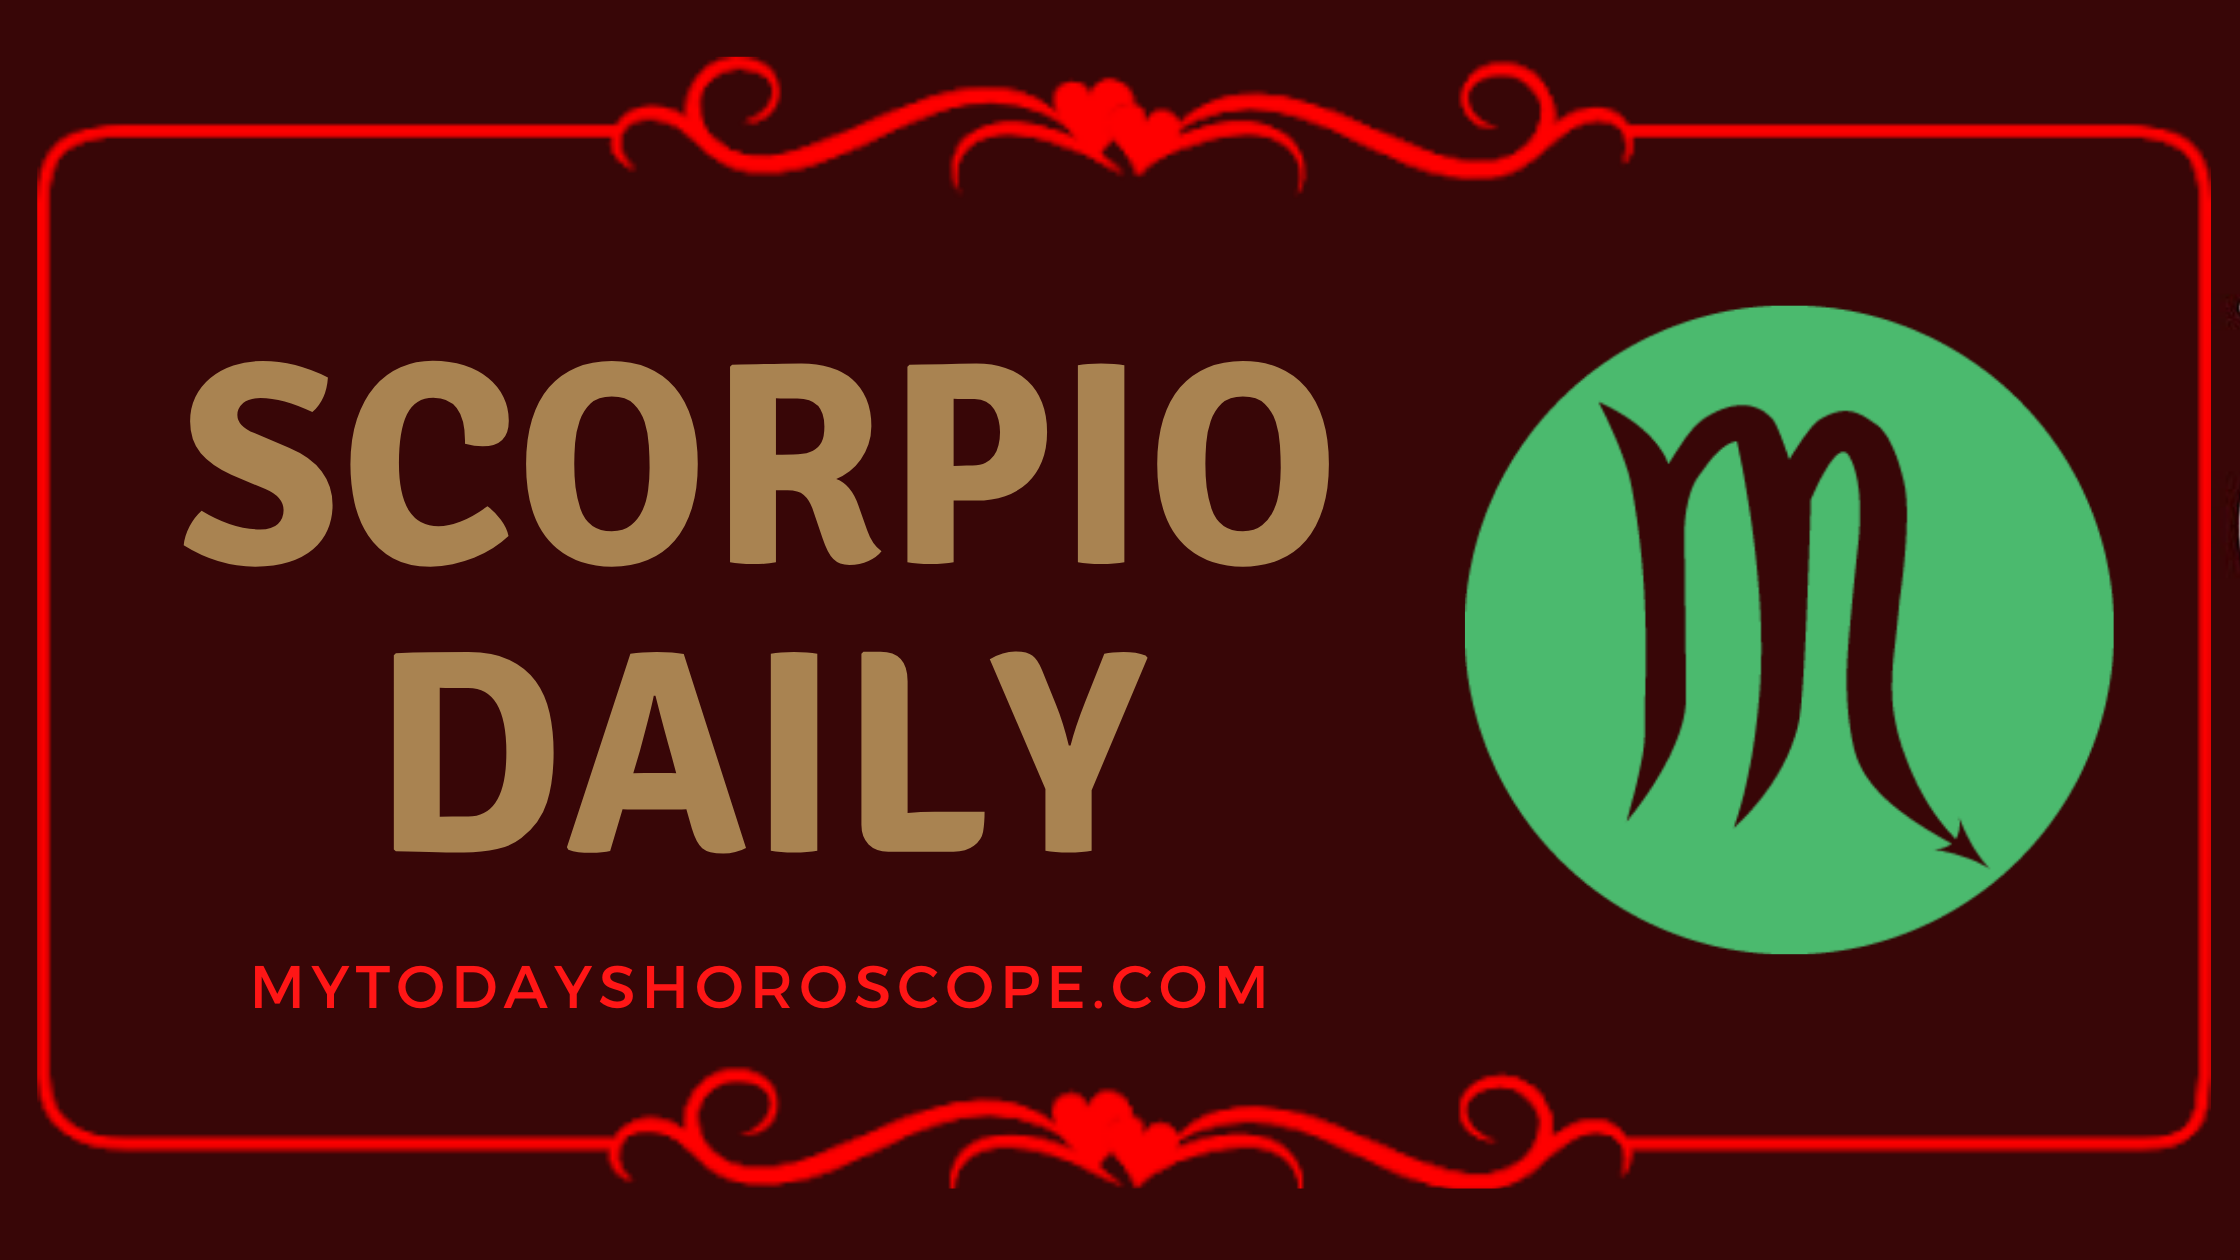 Daily Love Scorpio Horoscope, Daily Luck Scorpio Astrology, and Daily Career Scorpio Horoscope